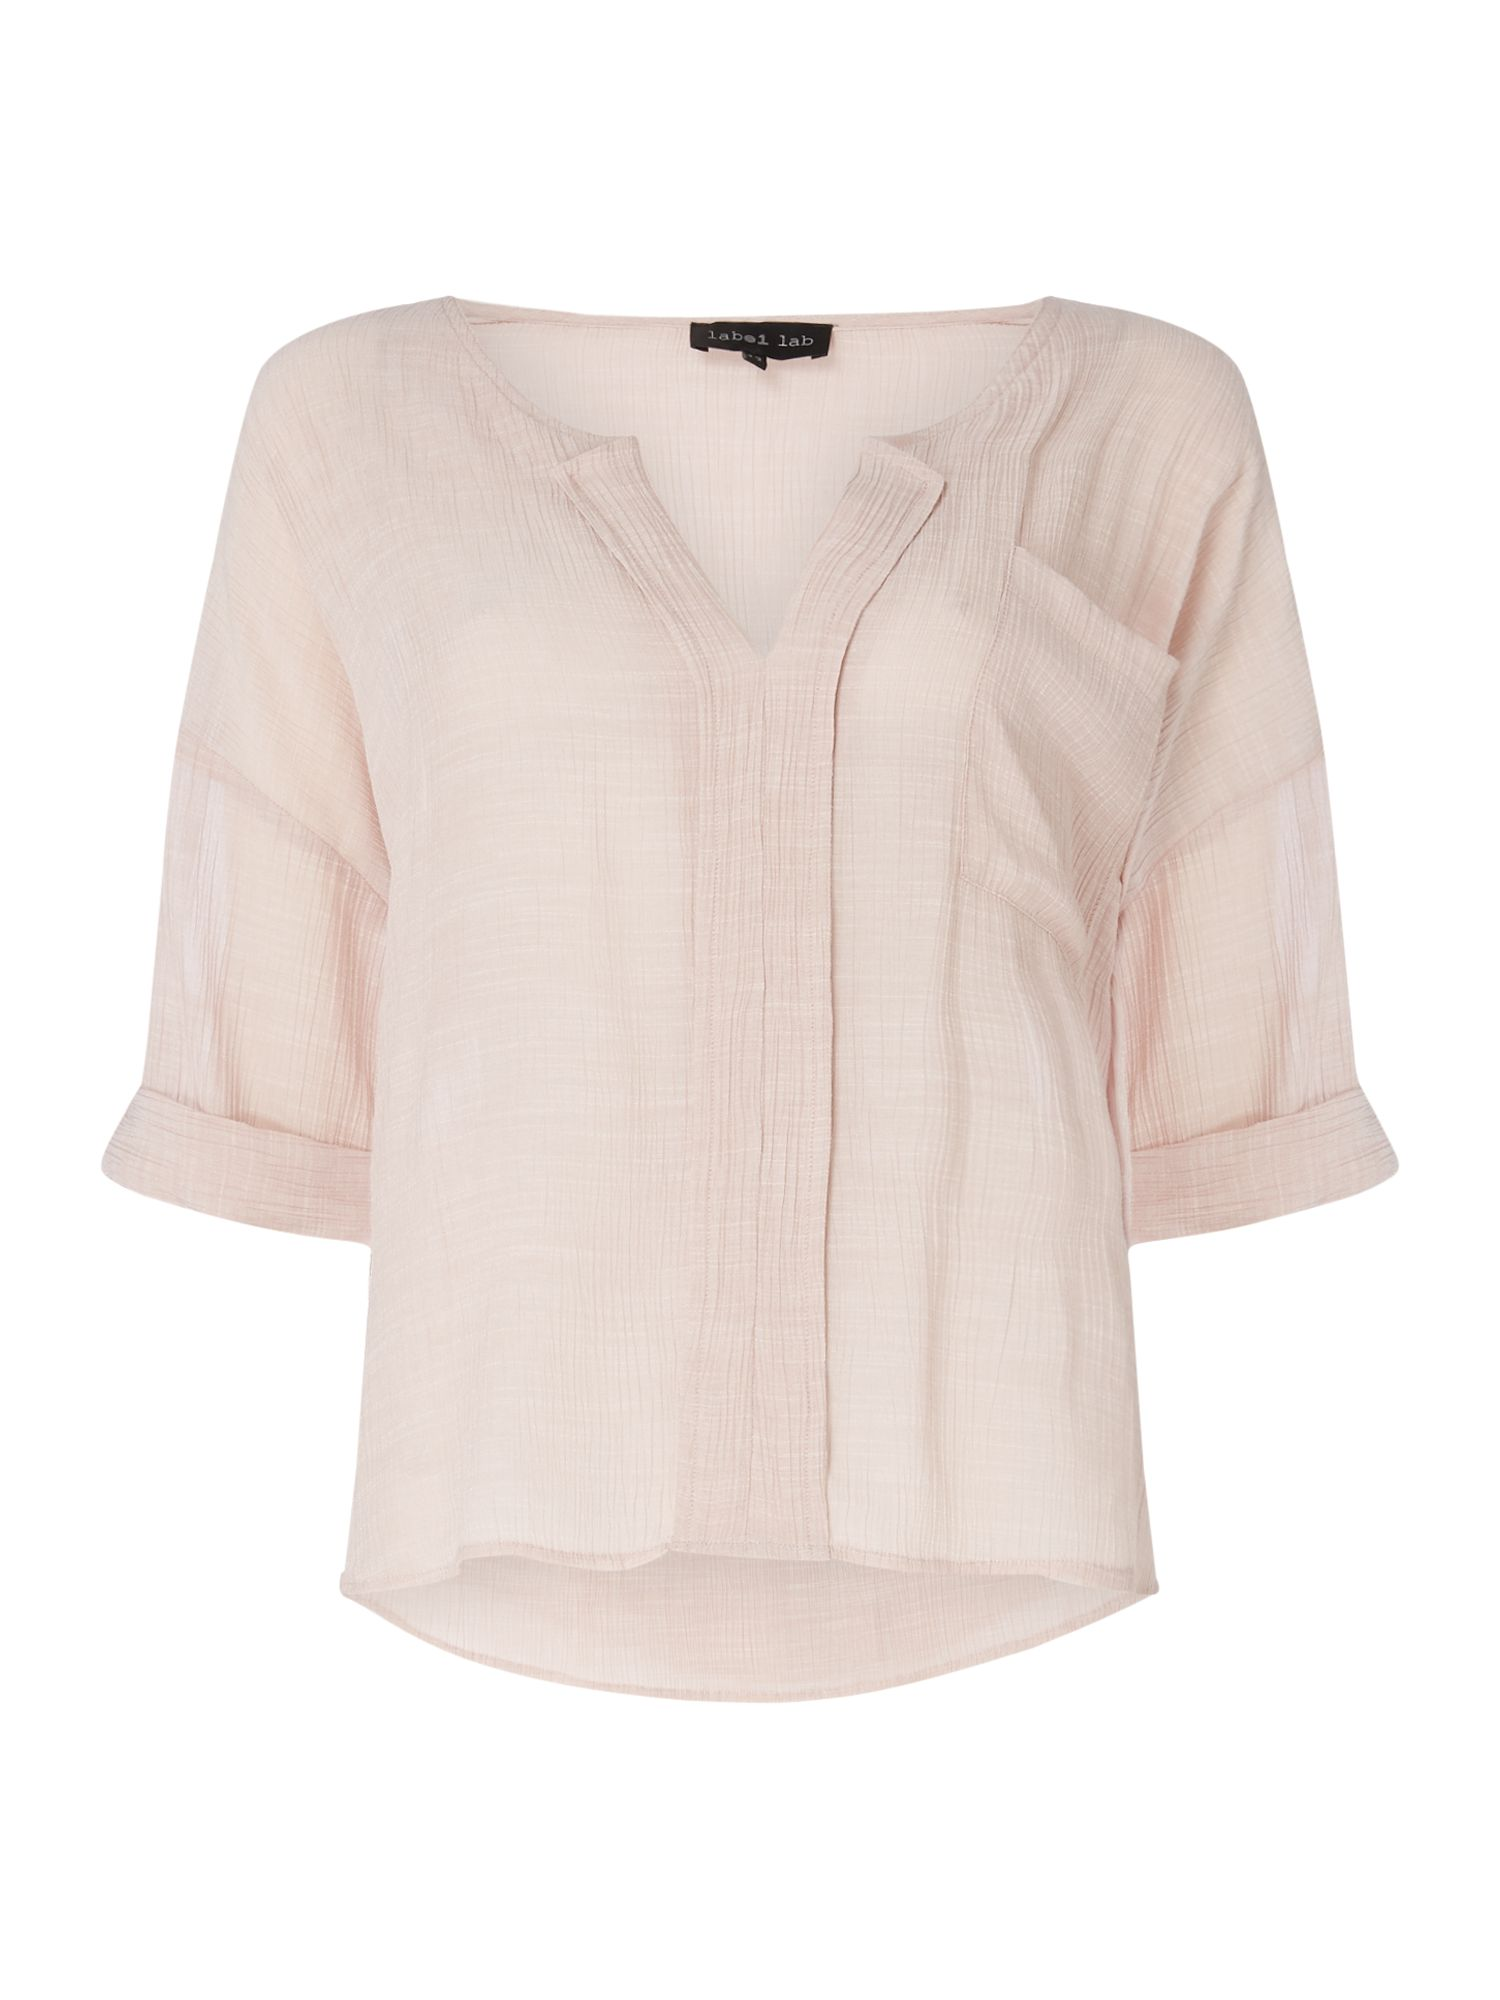 Label Lab Amy woven shirt, Pink